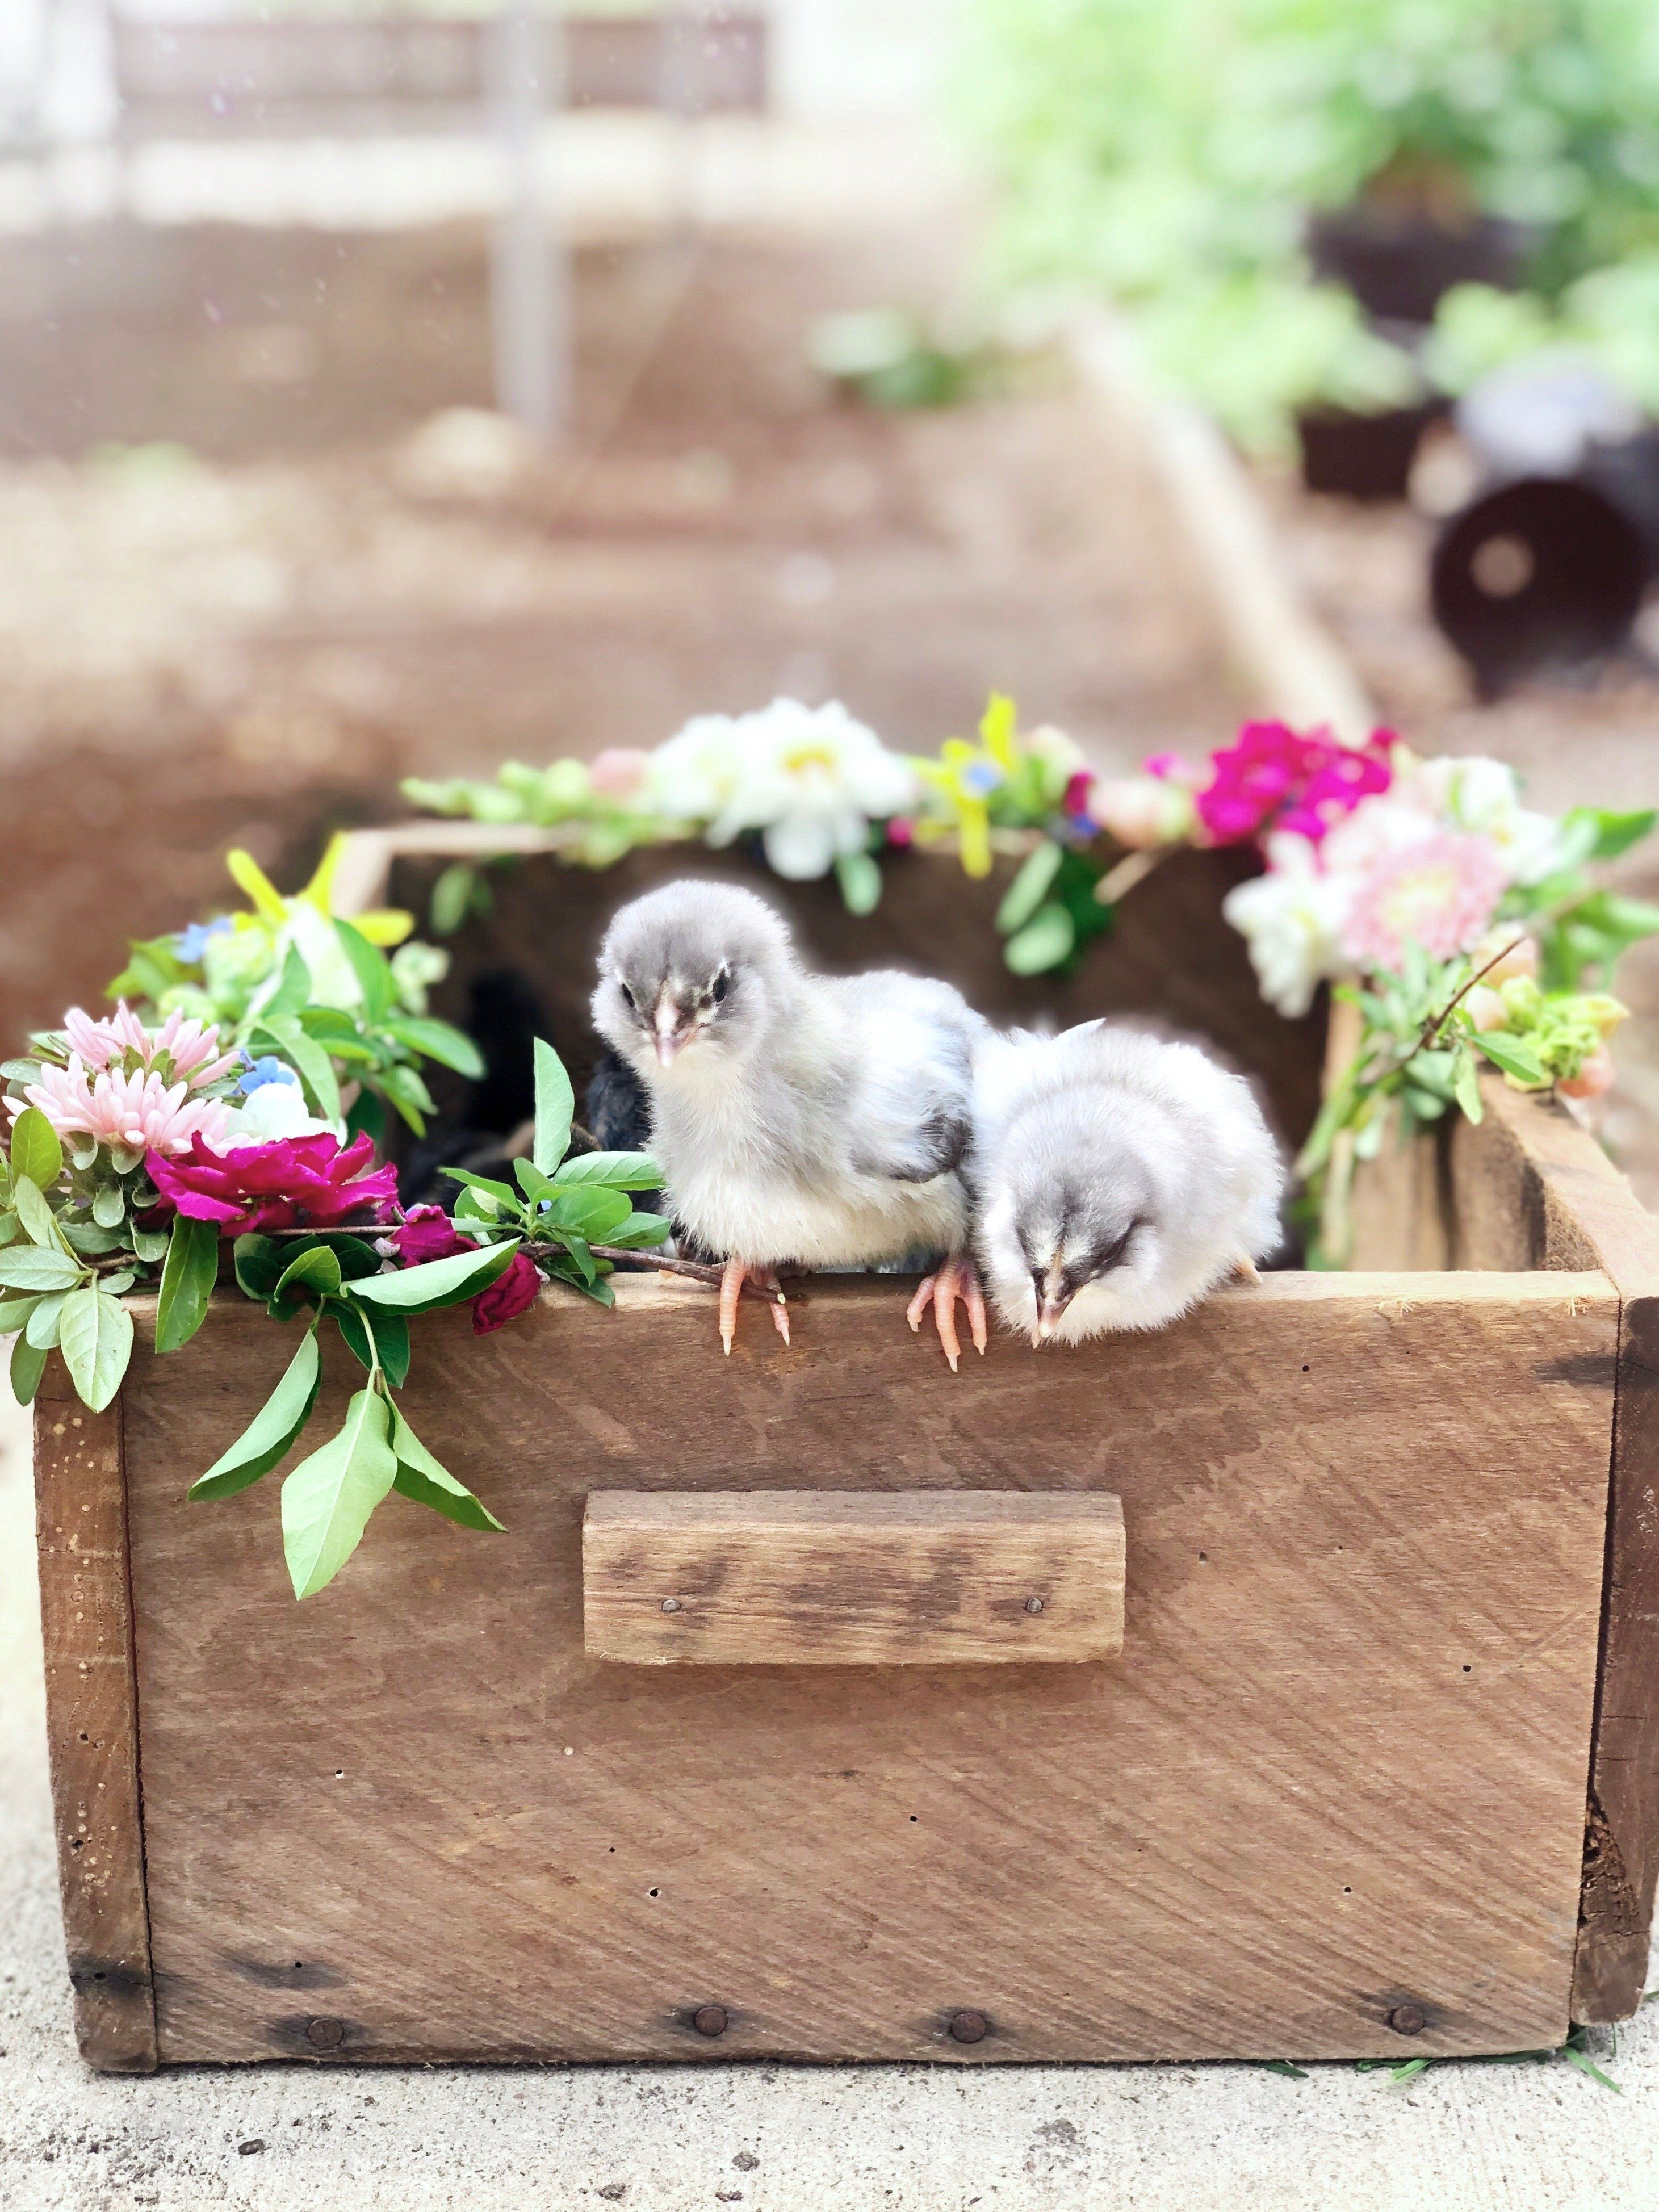 New chicks coming to the farm!